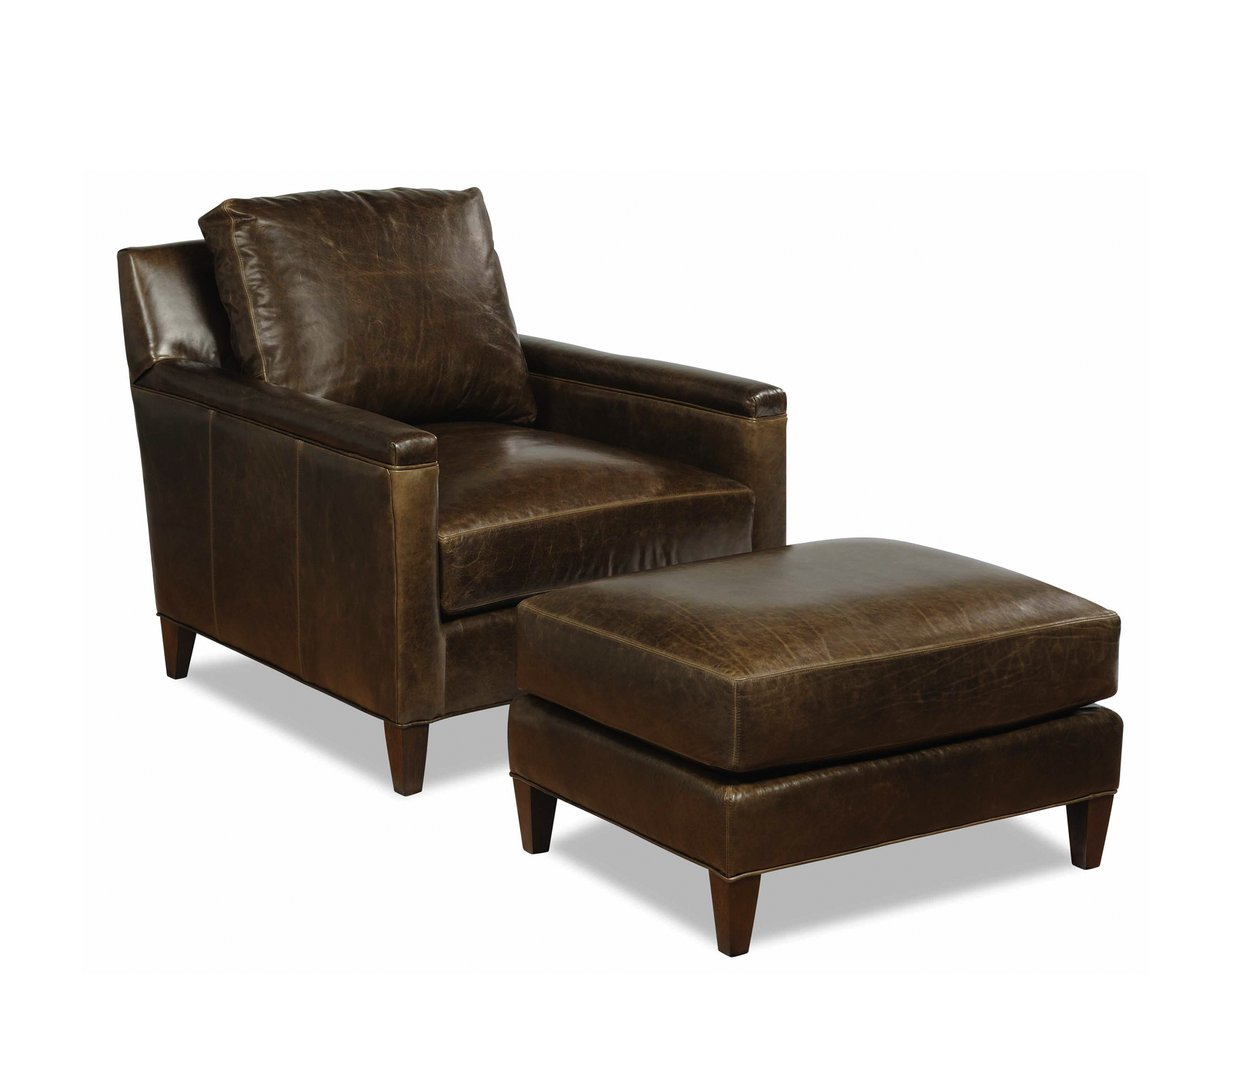 Malloy Chair and Ottoman